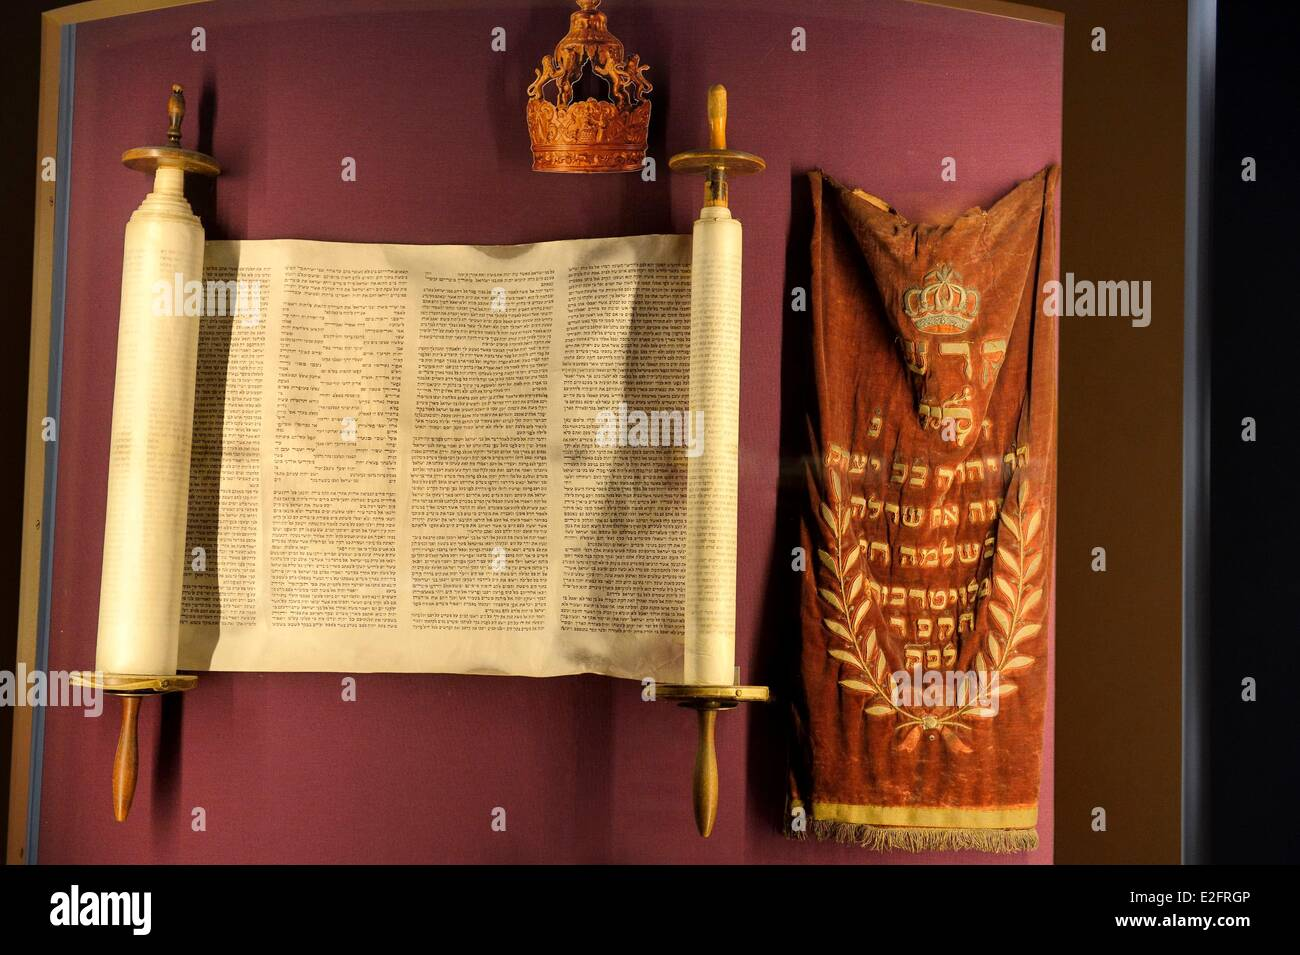 France Bas Rhin Bouxwiller Jewish Alsatian museum in the former synagogue Torah and the Mendele (small coat in alsatian) - Stock Image